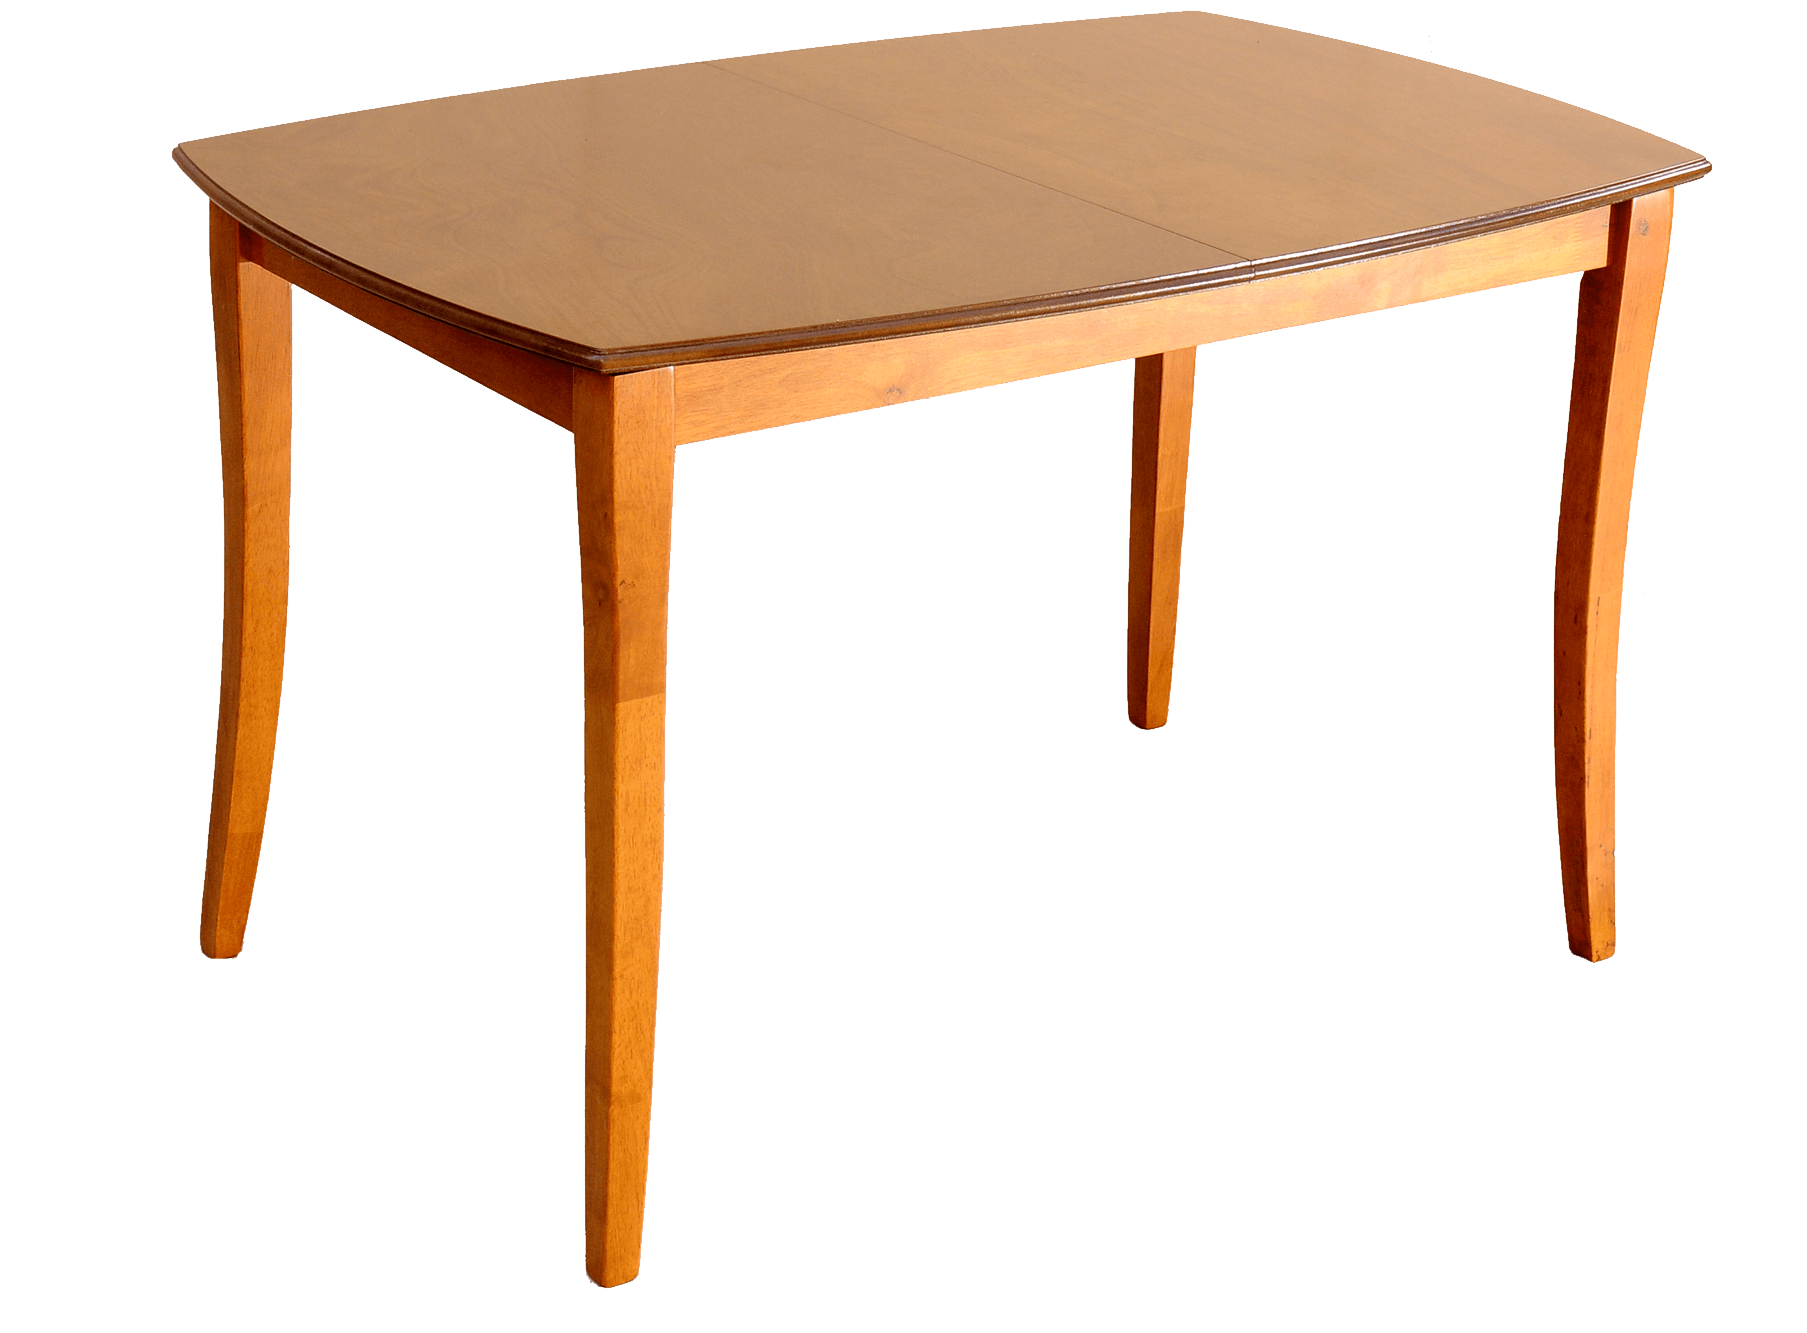 download wooden table png image #13364